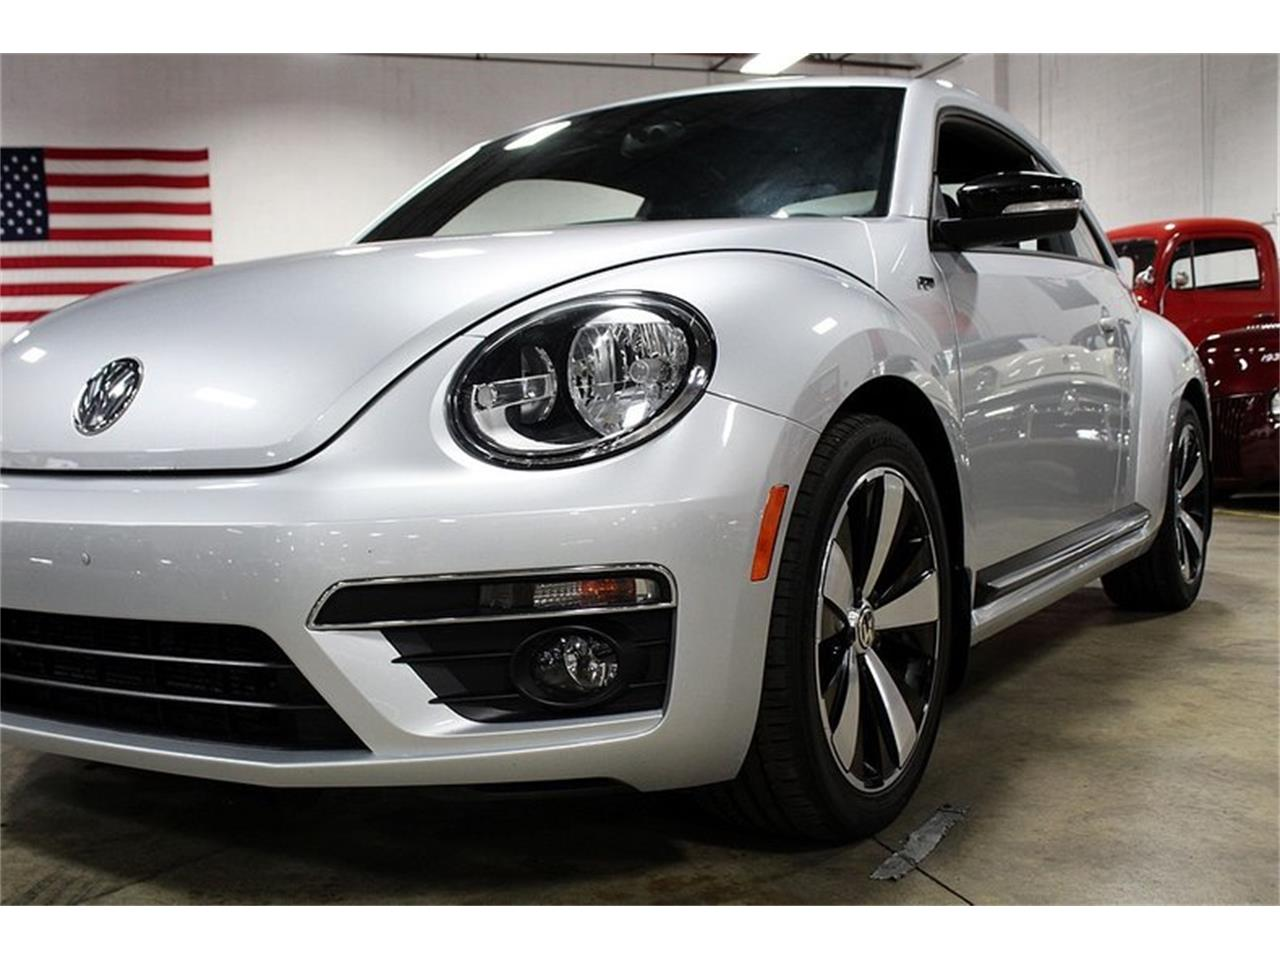 Large Picture of 2014 Volkswagen Beetle located in Kentwood Michigan - $15,900.00 - OIFD